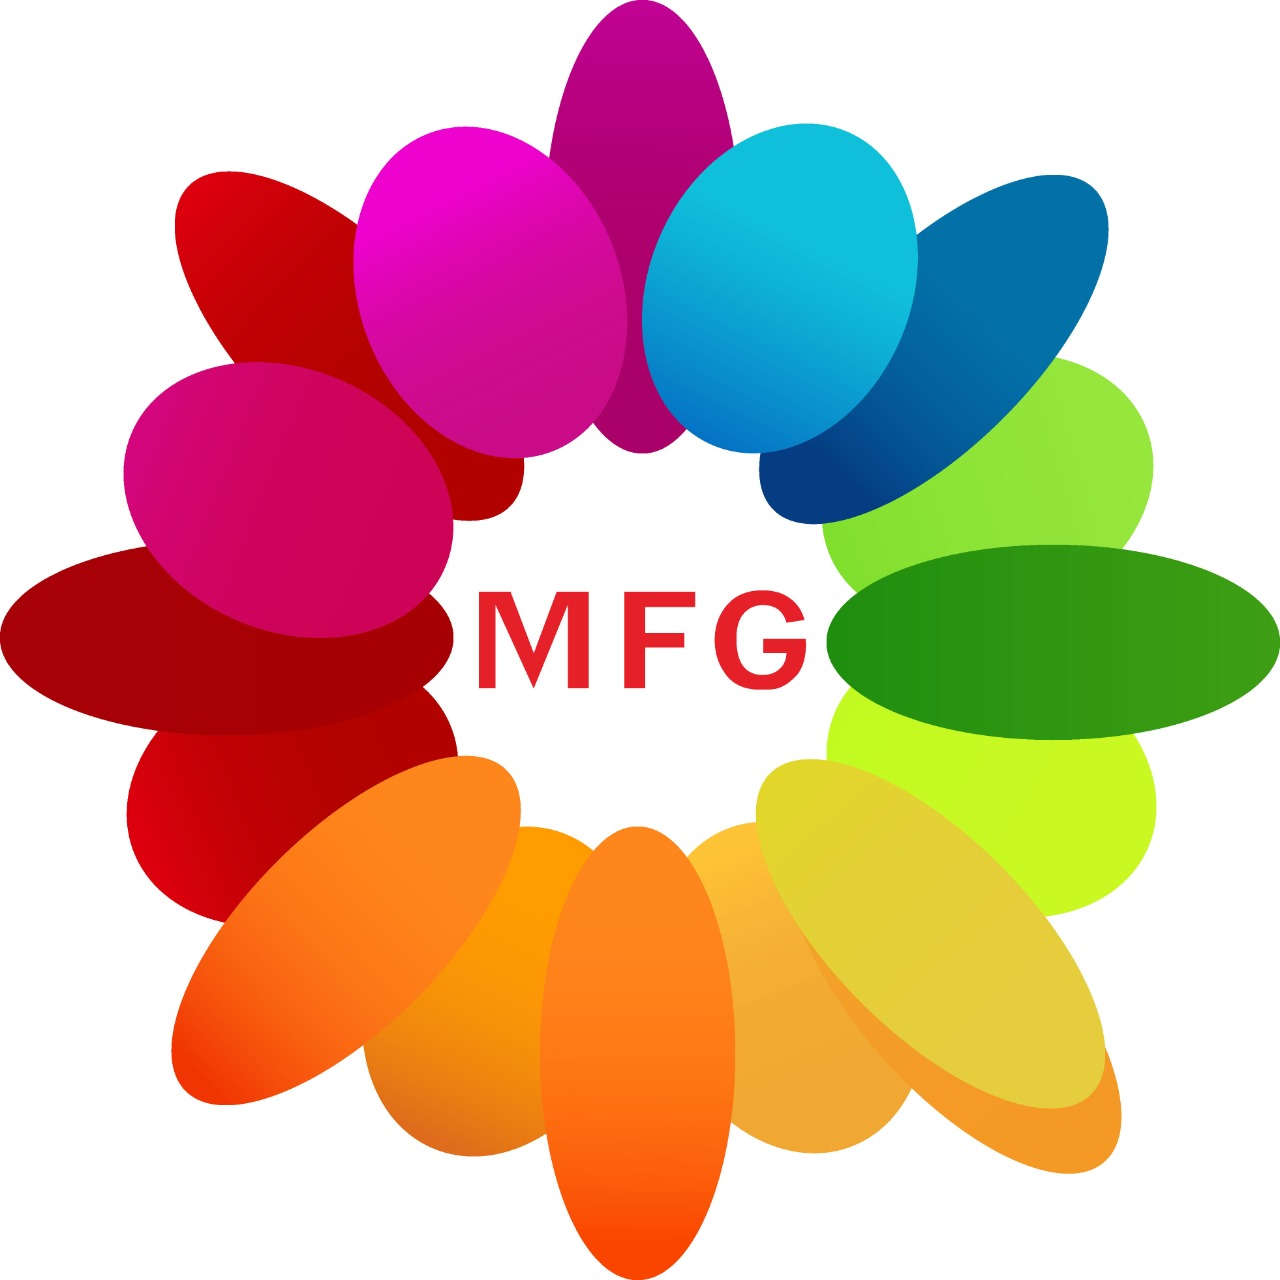 Beautiful bunch of white lilies arranged with fresh red roses with 1 pound chocovanilla cake